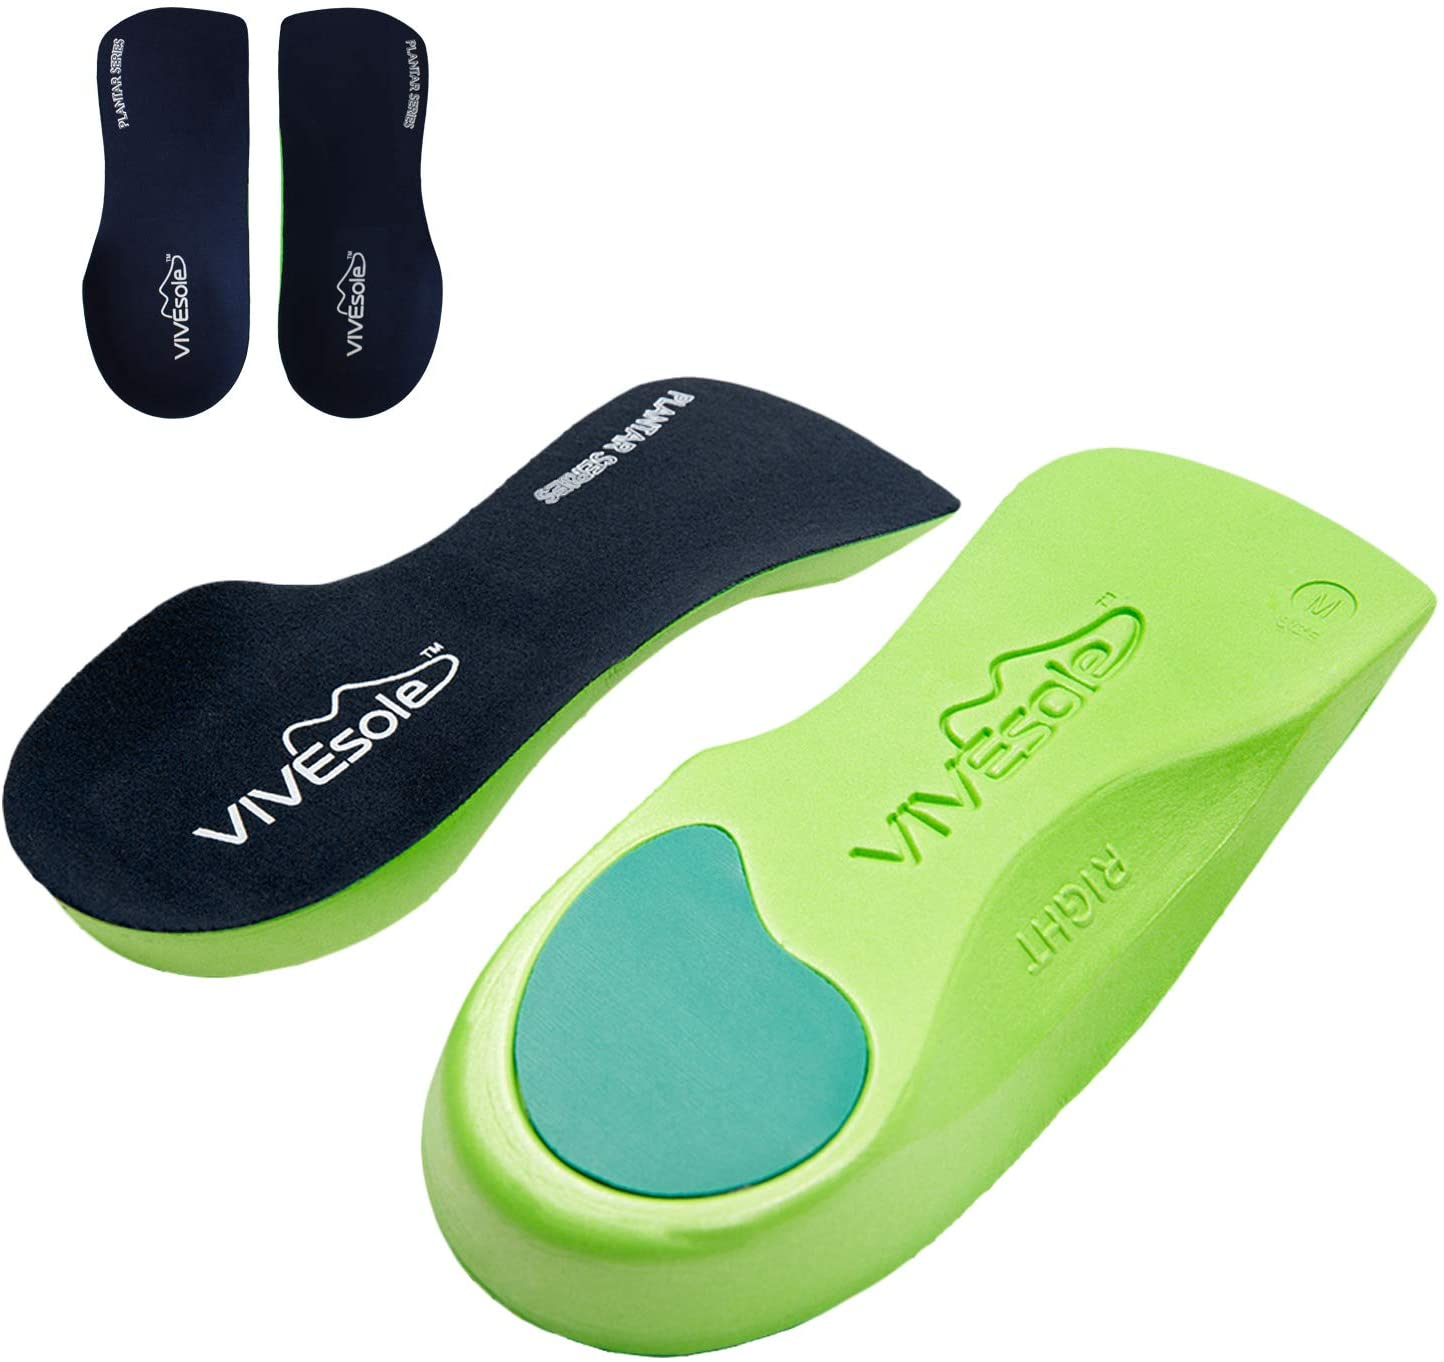 Vivesole Orthotic Heel Insoles - Half Shoe Inserts for Plantar Fasciitis, Foot Arch, Feet Fatigue, Lower Back Pain Relief - Non Odor Foam Cup Support for Men, Woman - for Walking, Running, Exercises